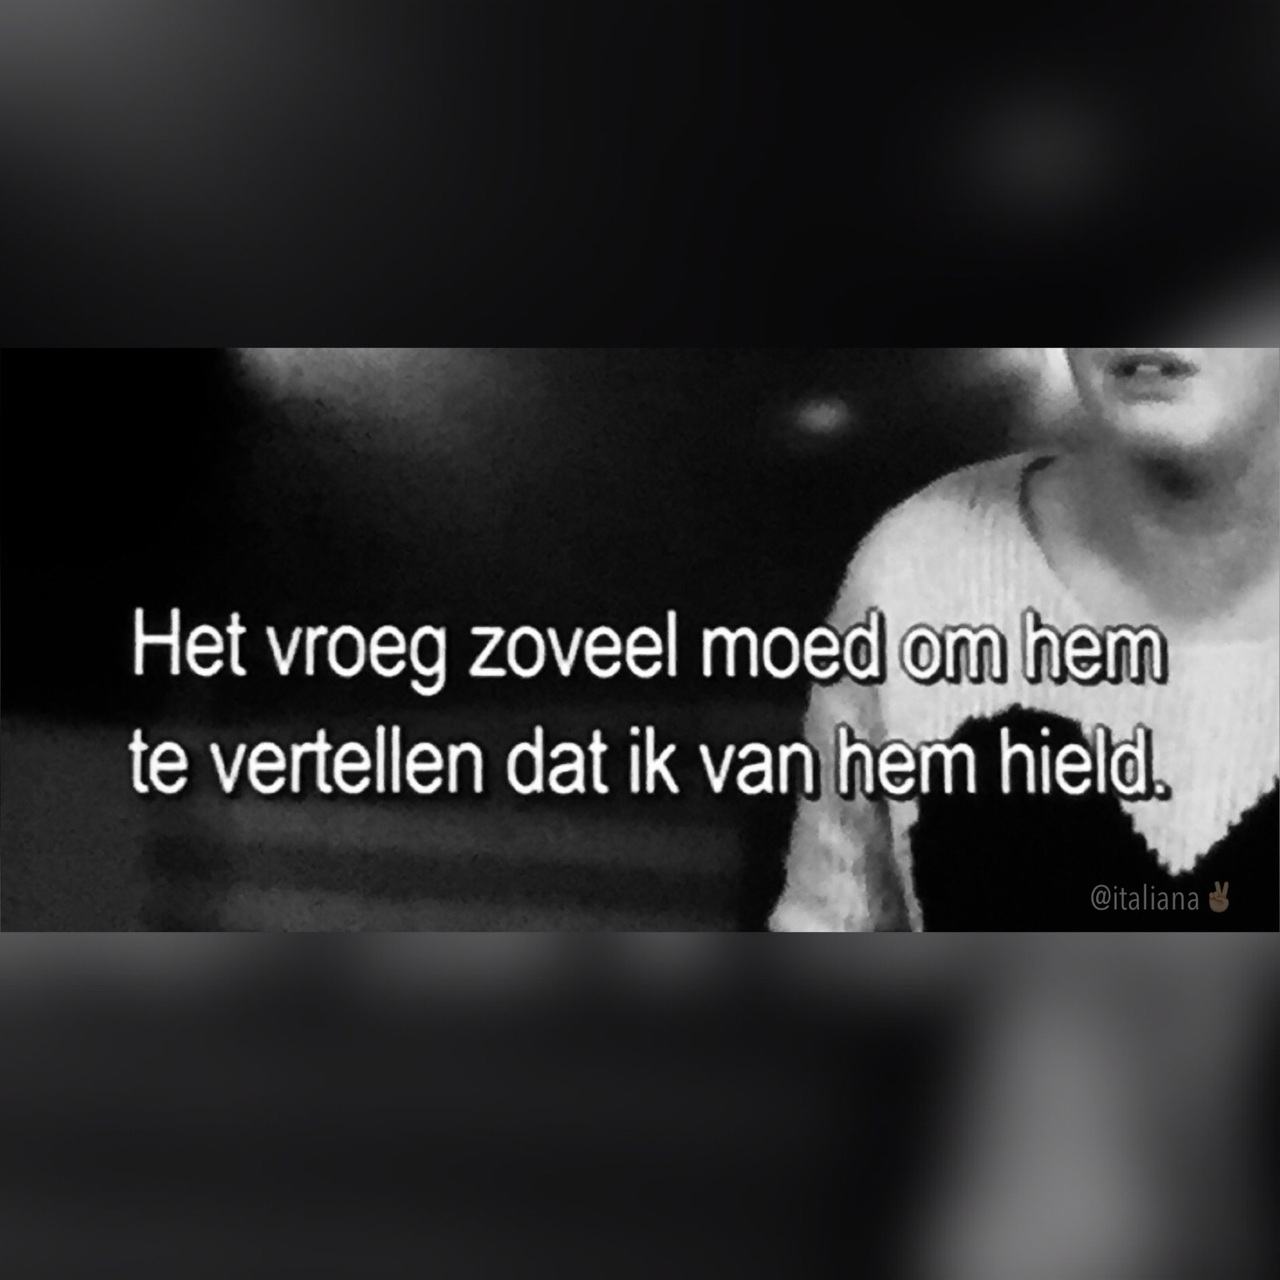 Image About Love In Dutch Quotes By Italiana On We Heart It